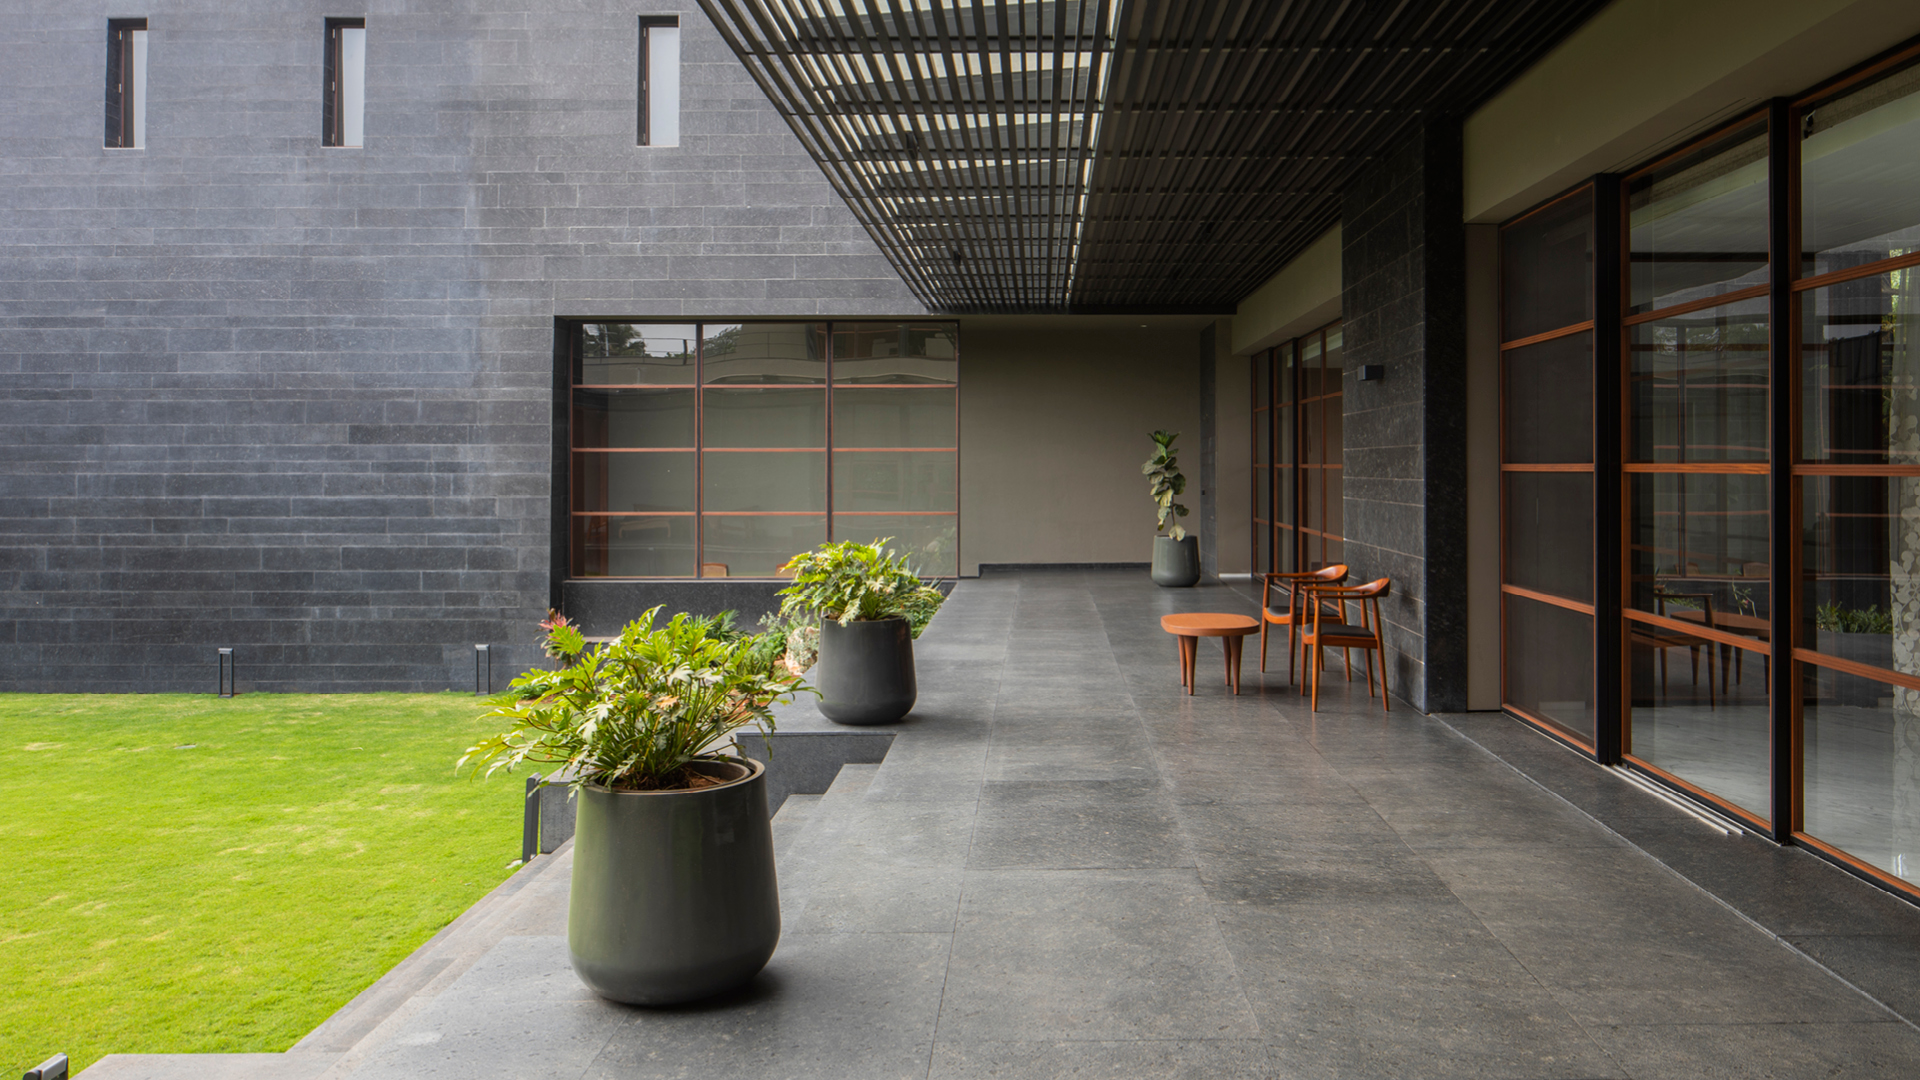 Black Bastion House in Coimbatore designed by SPASM Design | Black Bastion House| Spasm Design | STIRworld